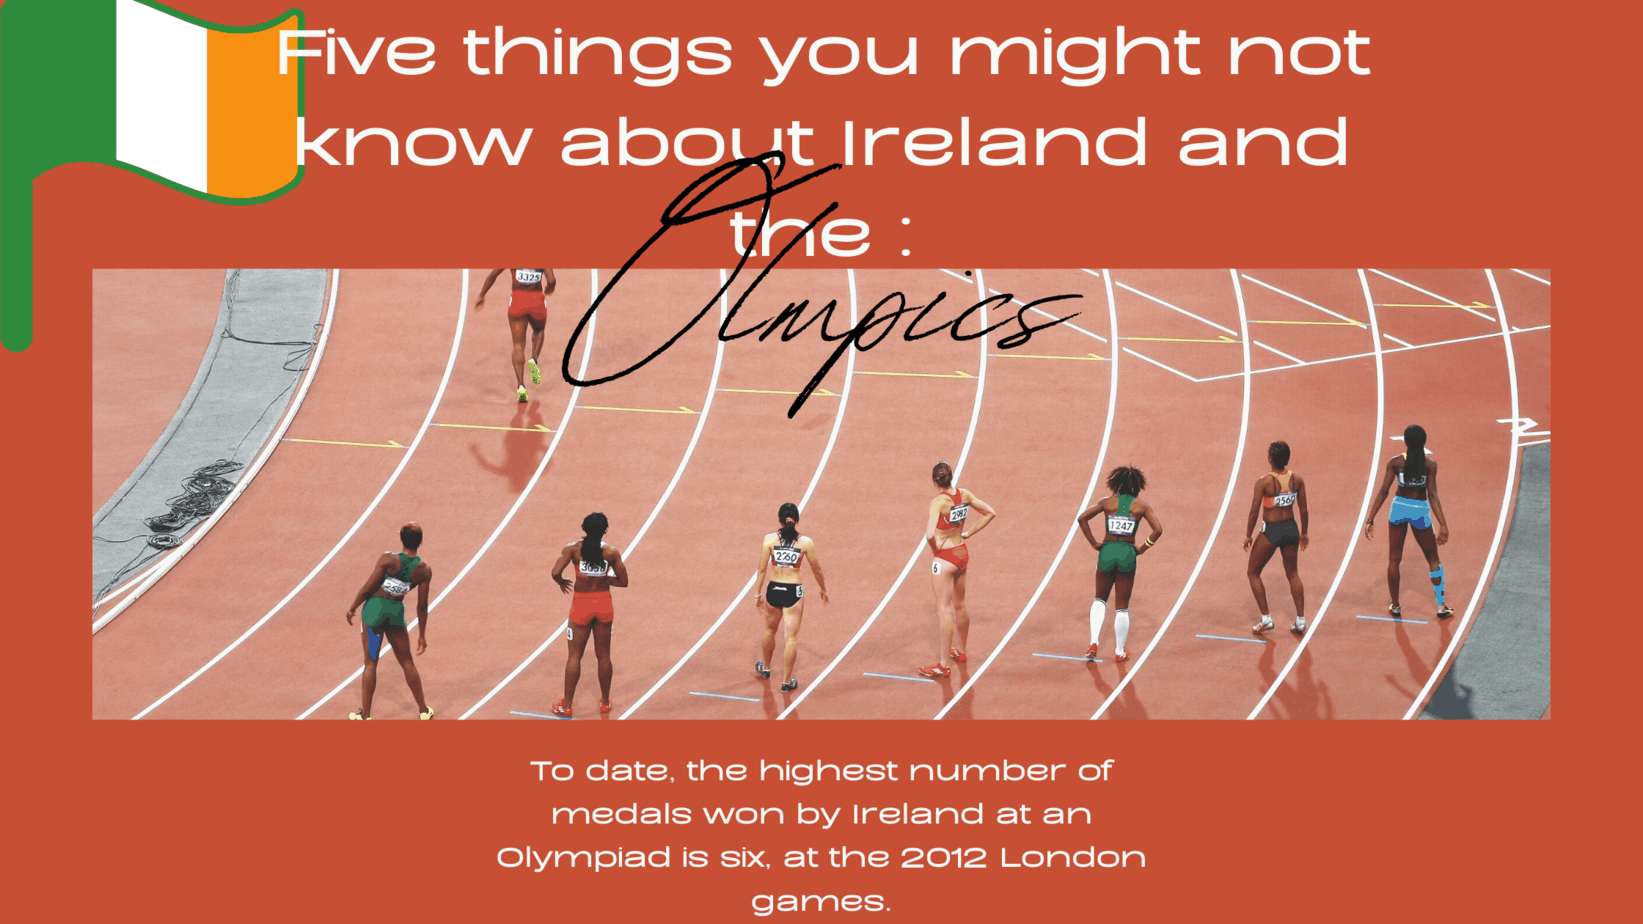 Five things you might not know about Ireland and the Olympics